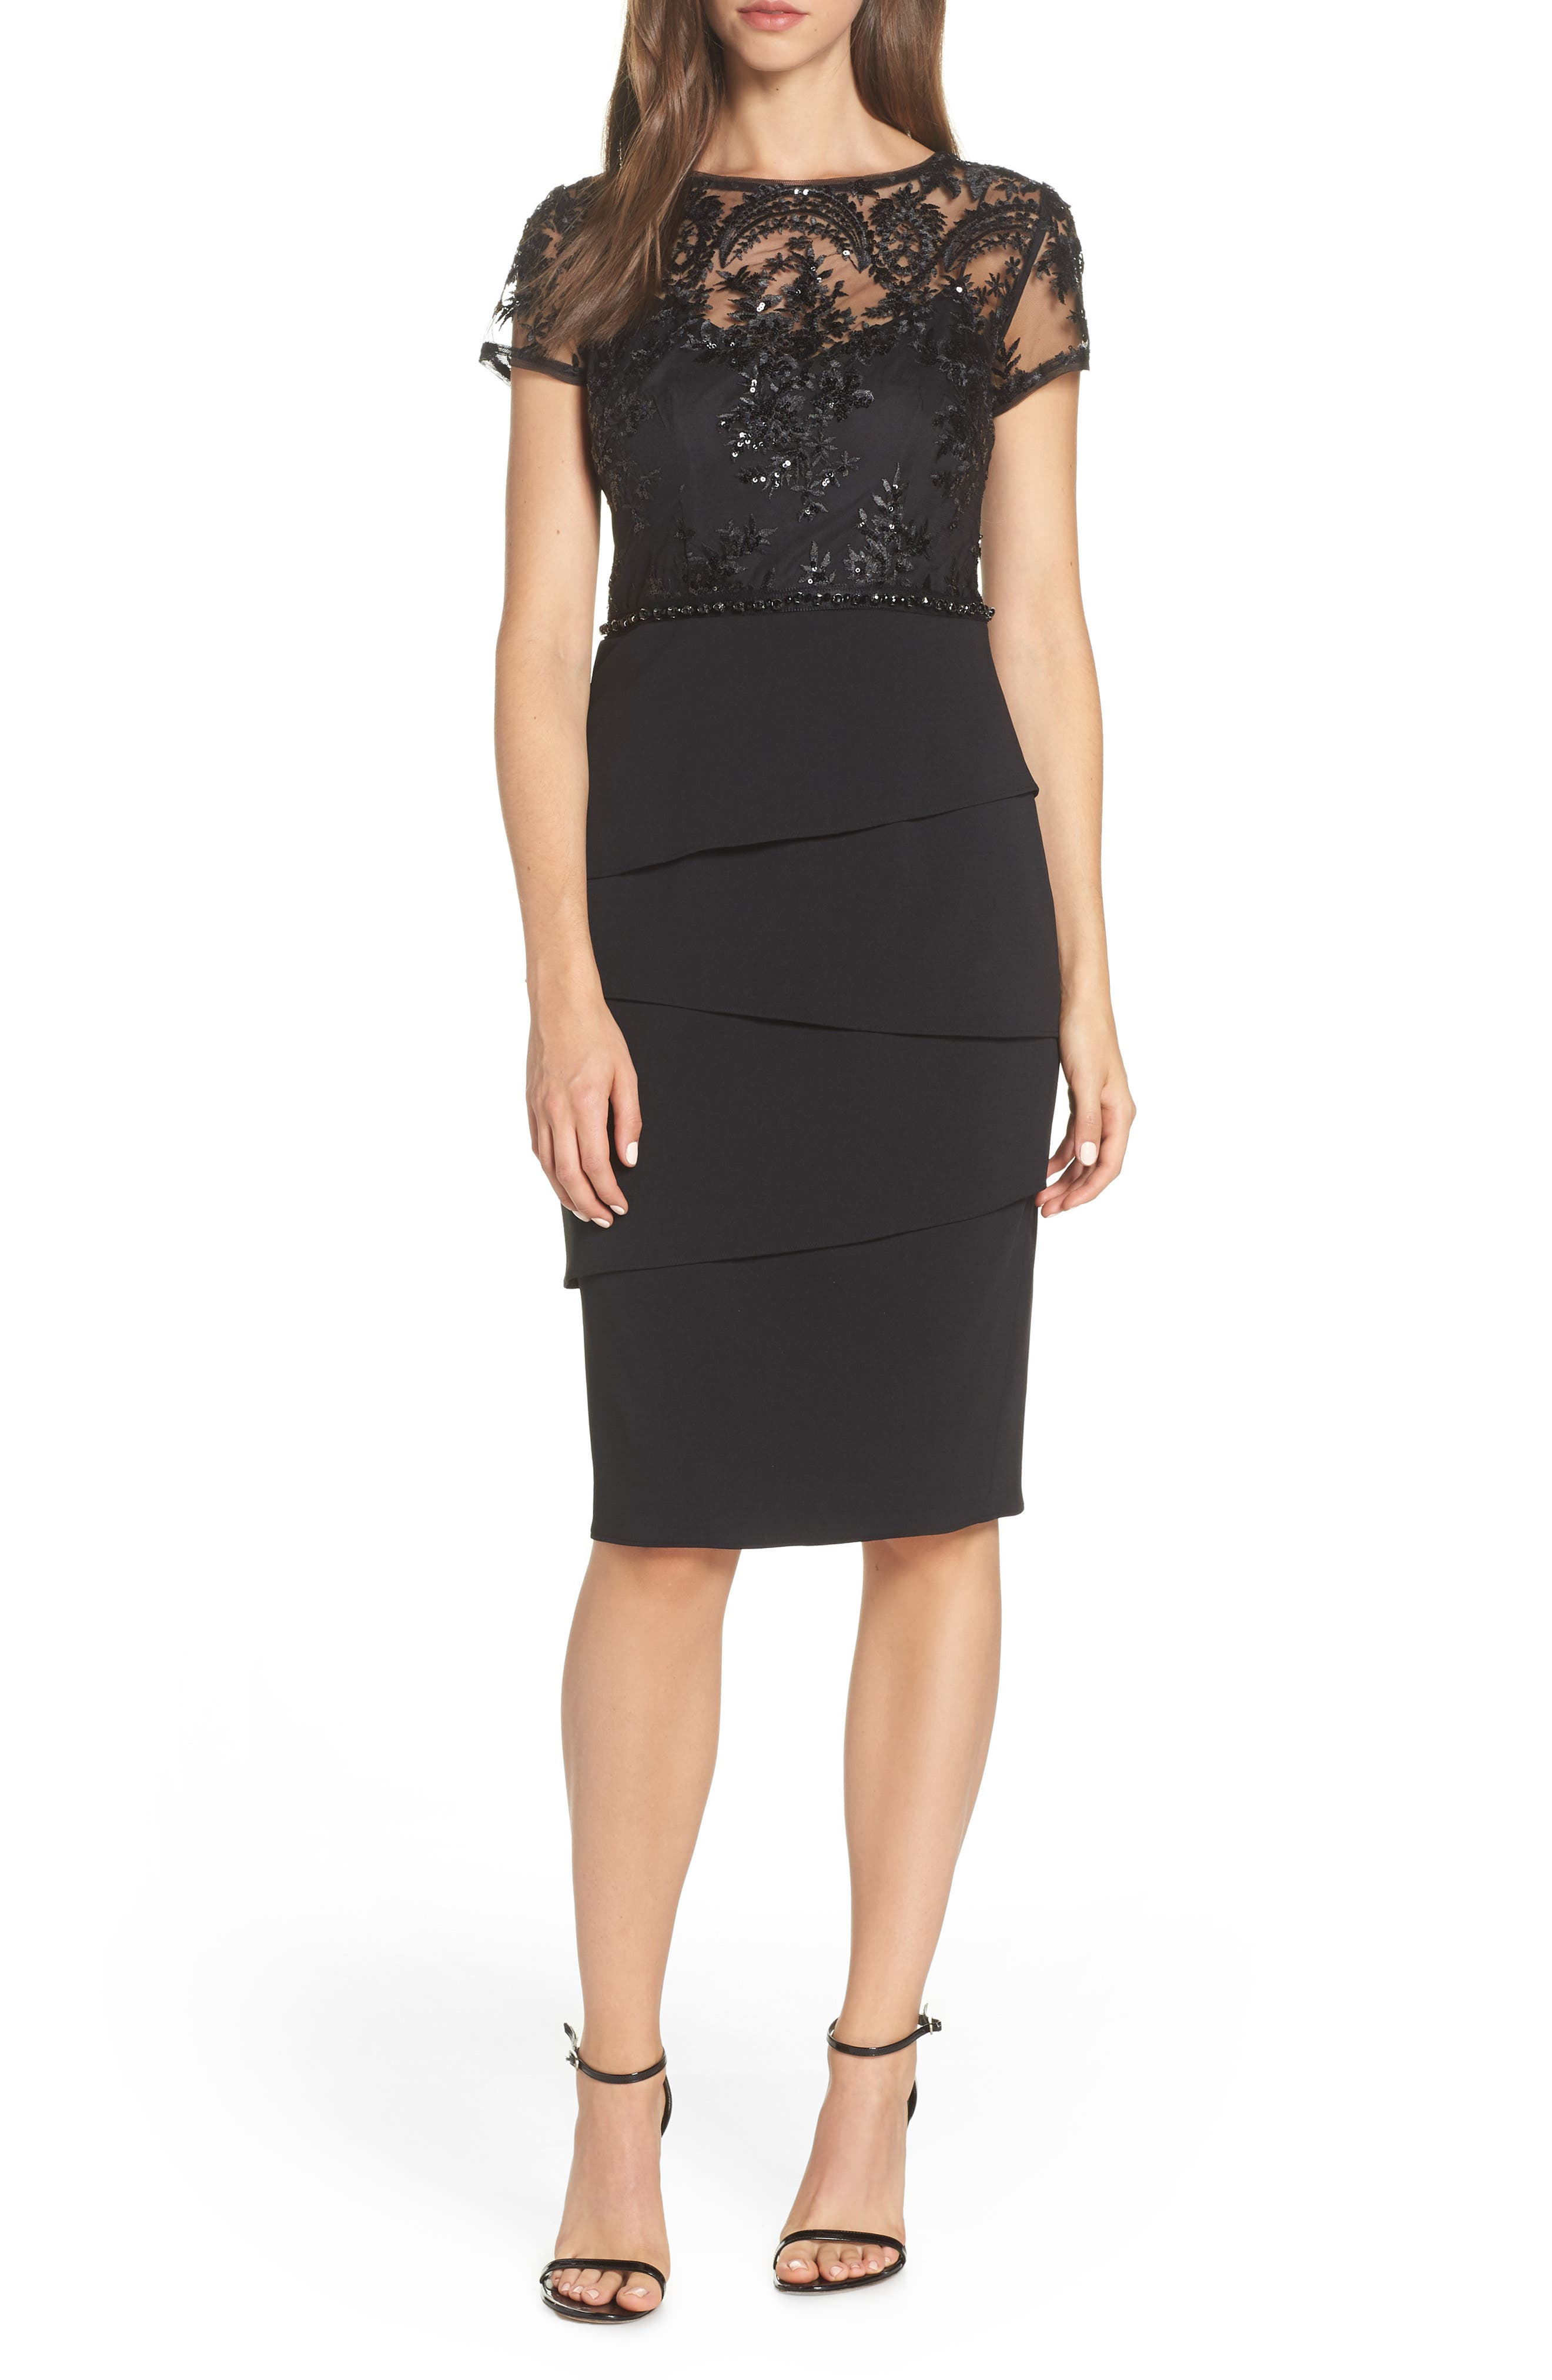 Adrianna Papell Sequin Cocktail Sheath